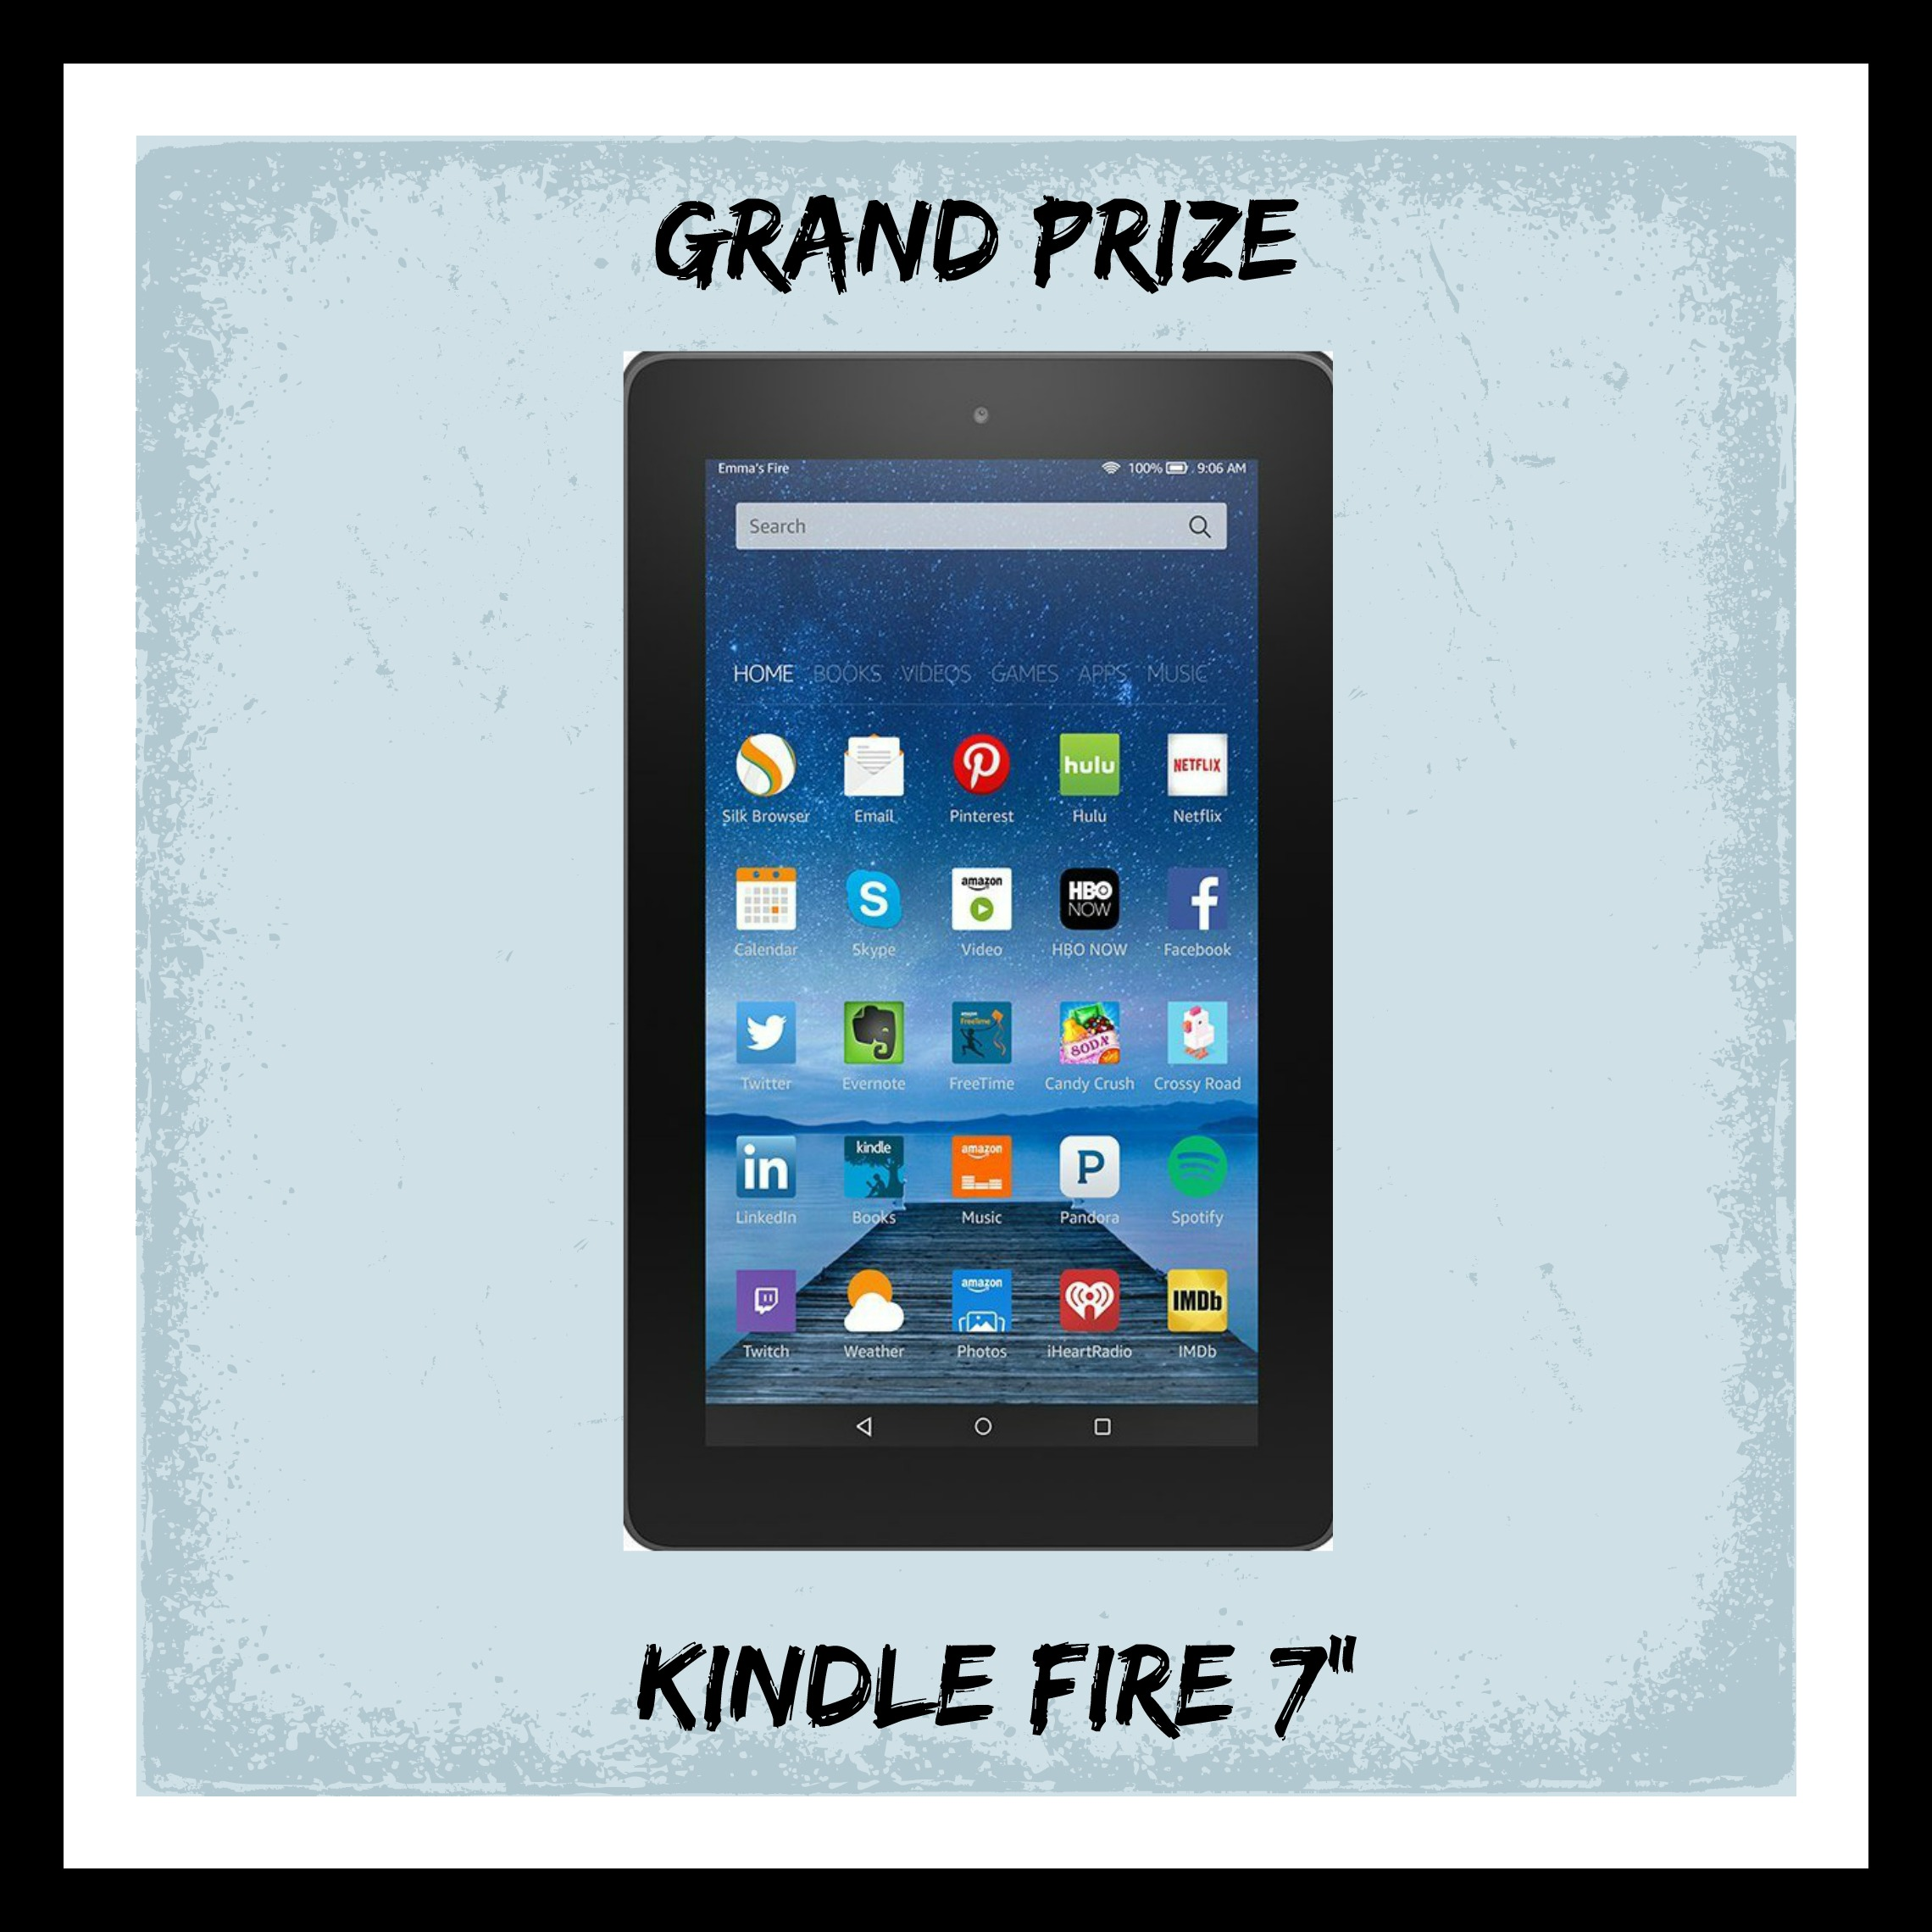 Kindle grand prize meme.jpg